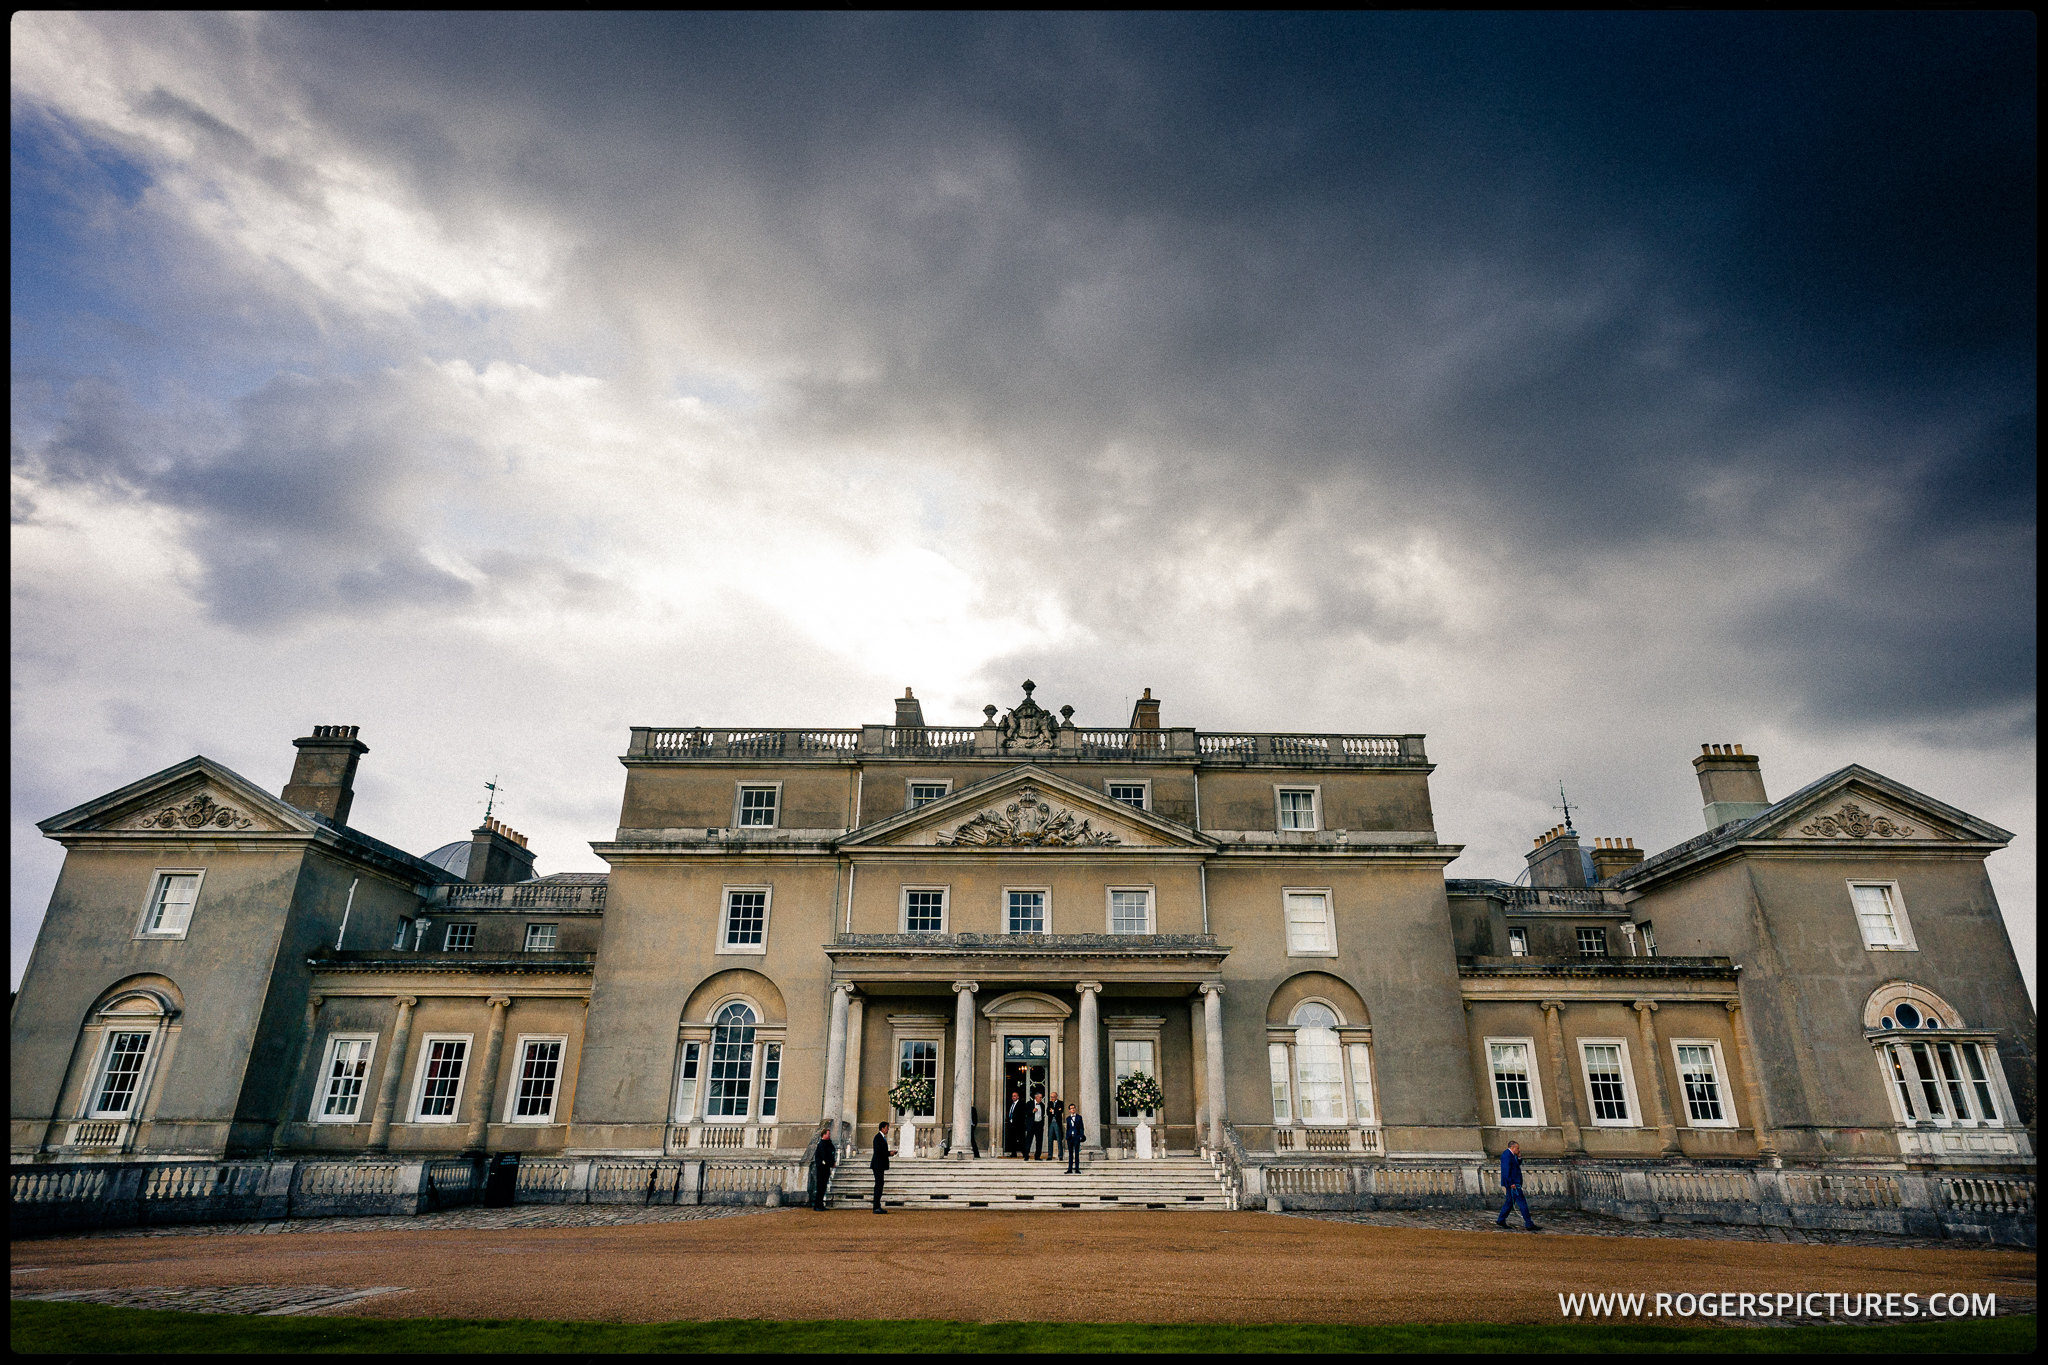 Wrotham Park wedding venue in Hertfordshire